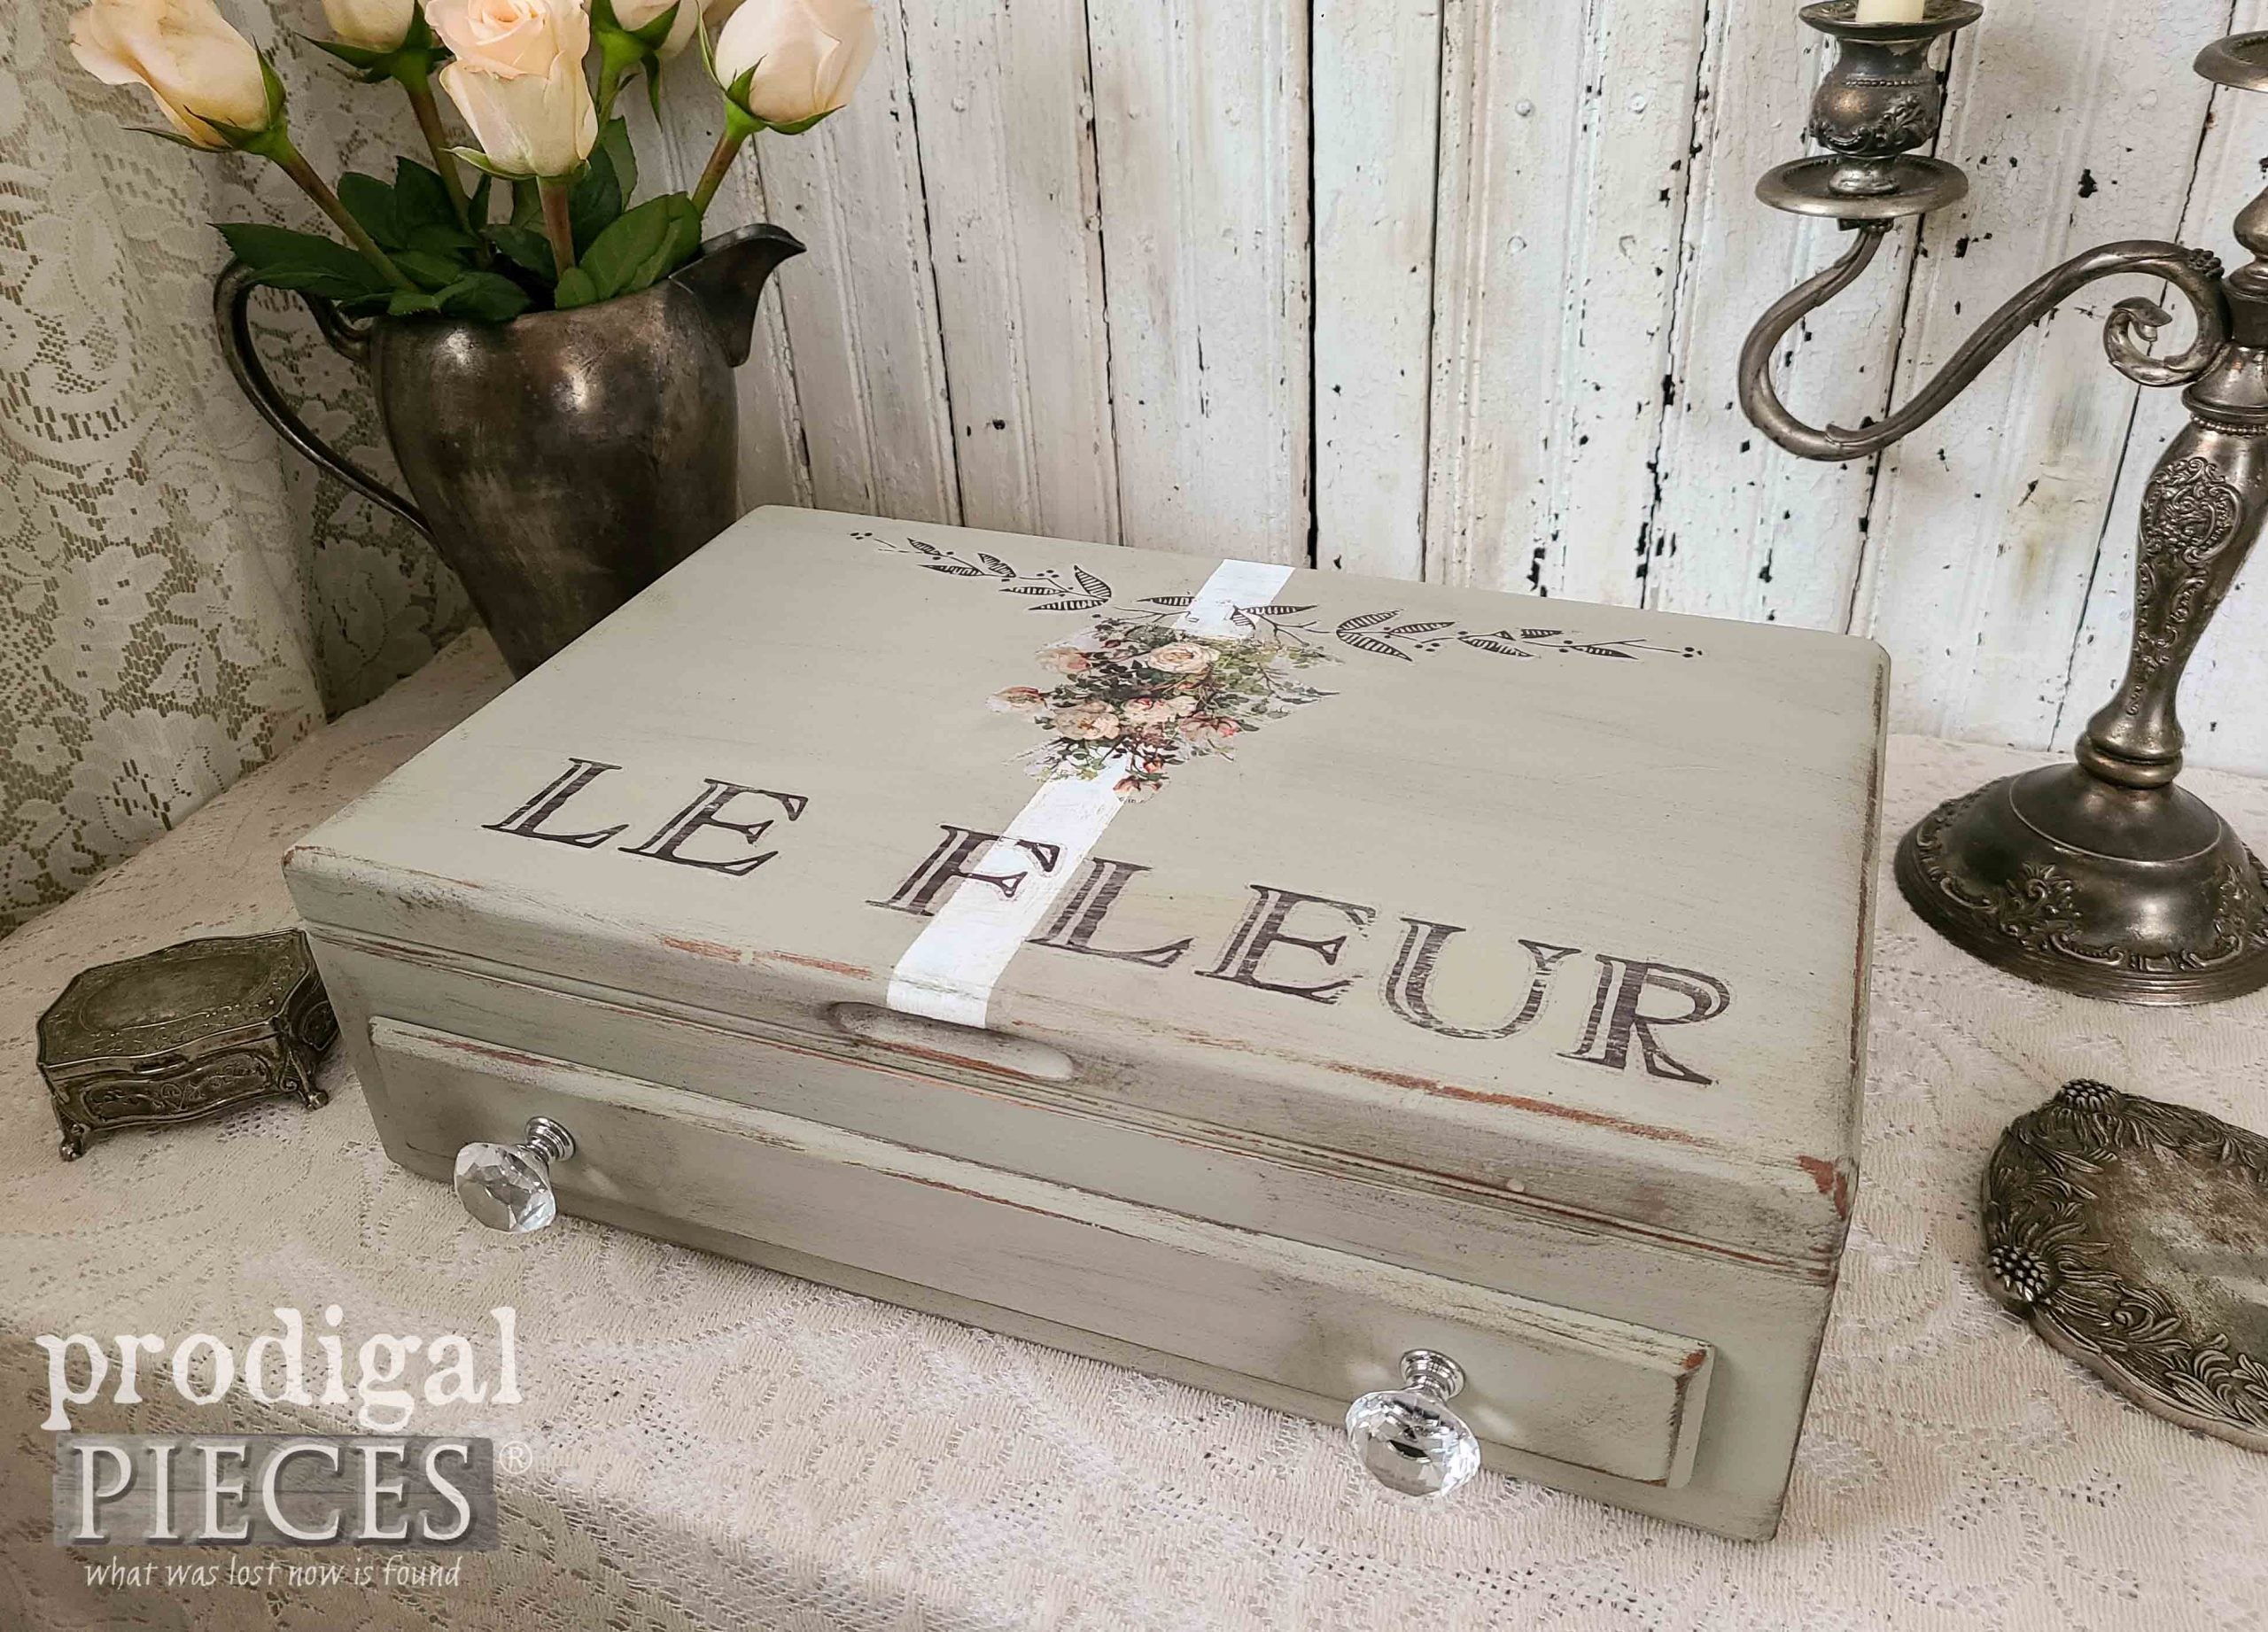 Le Fleur Storage Box from Upcycled Silverware Chest by Larissa of Prodigal Pieces | prodigalpieces.com #prodigalpieces